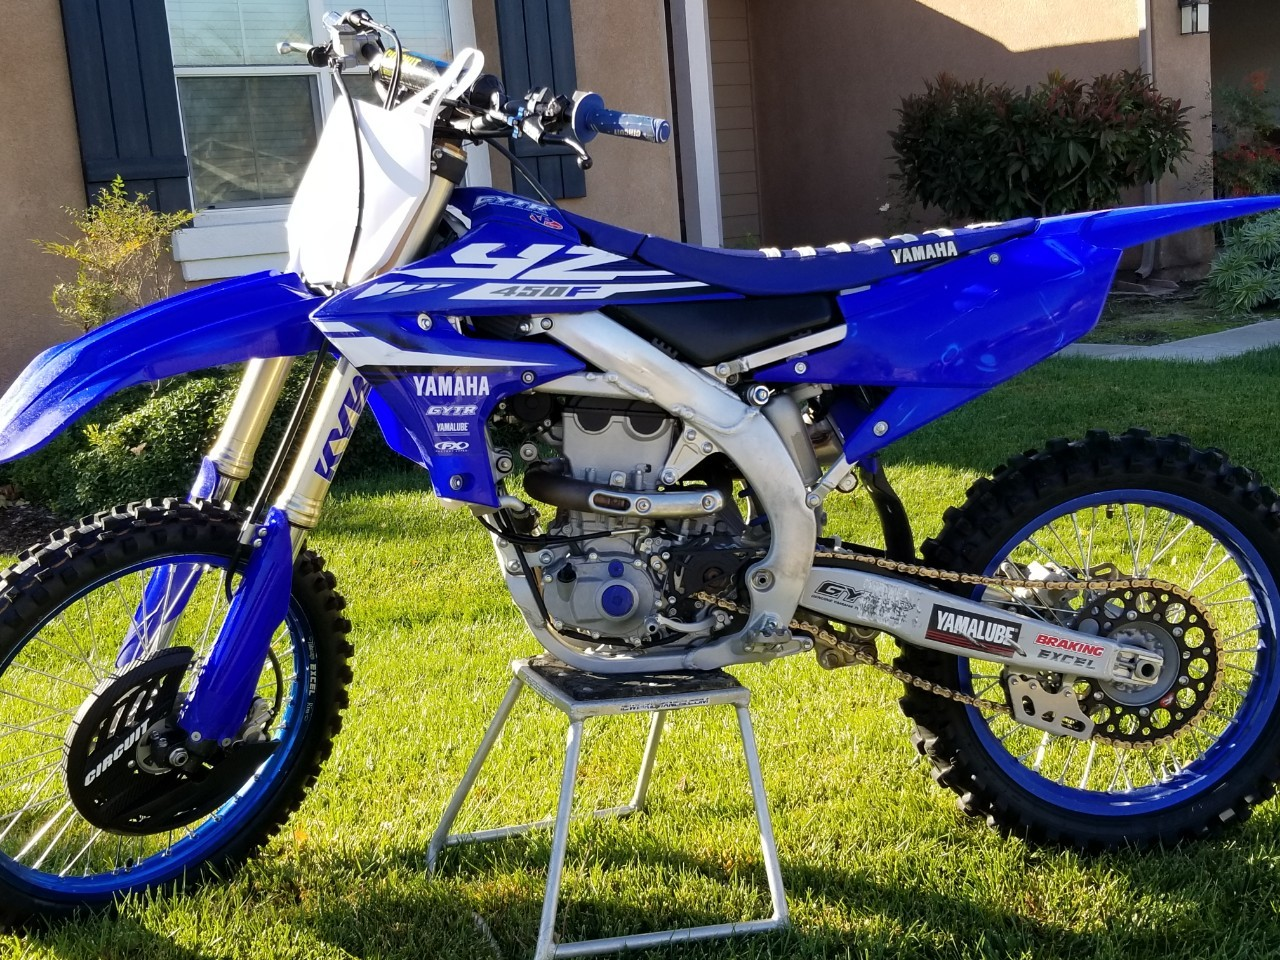 California - Used Dirt Bike Motorcycles For Sale - Cycle Trader